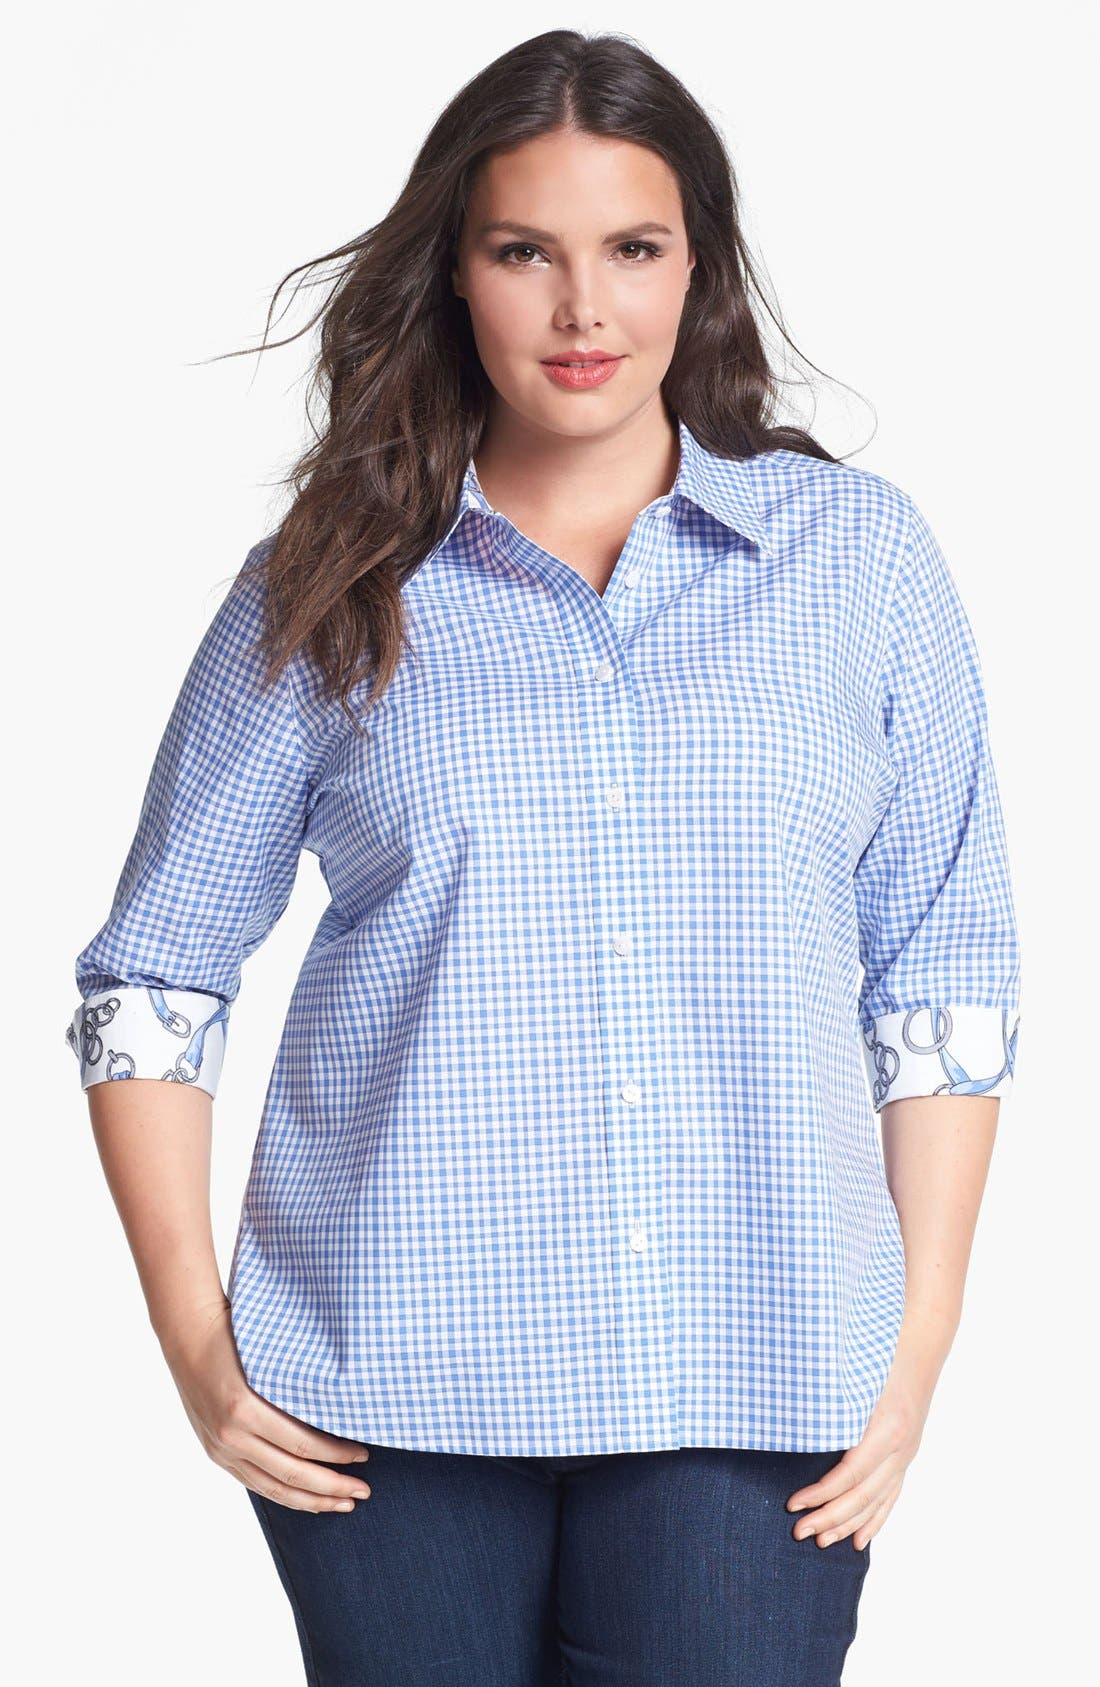 Alternate Image 1 Selected - Foxcroft Gingham Check Shirt (Plus Size)